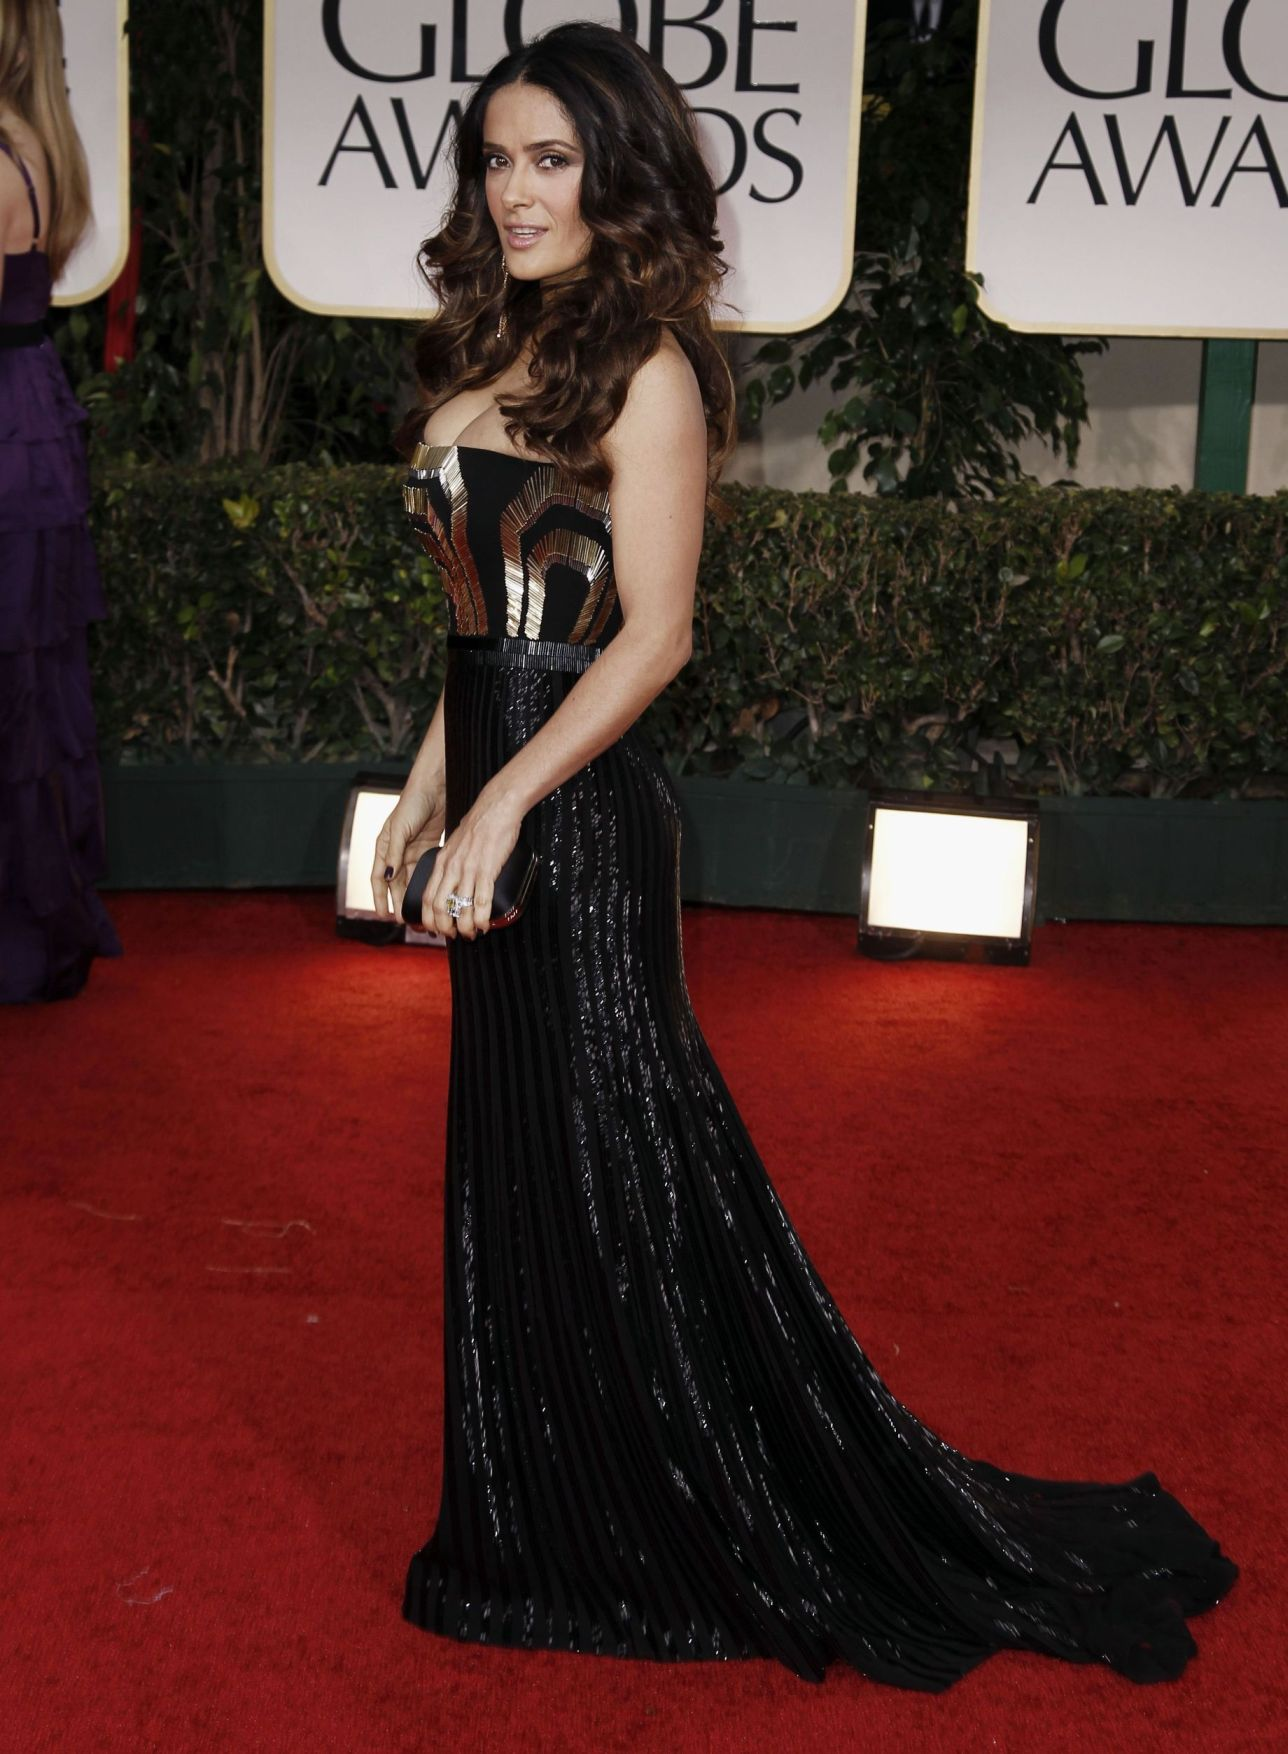 Selma hayek boobs at golden globes